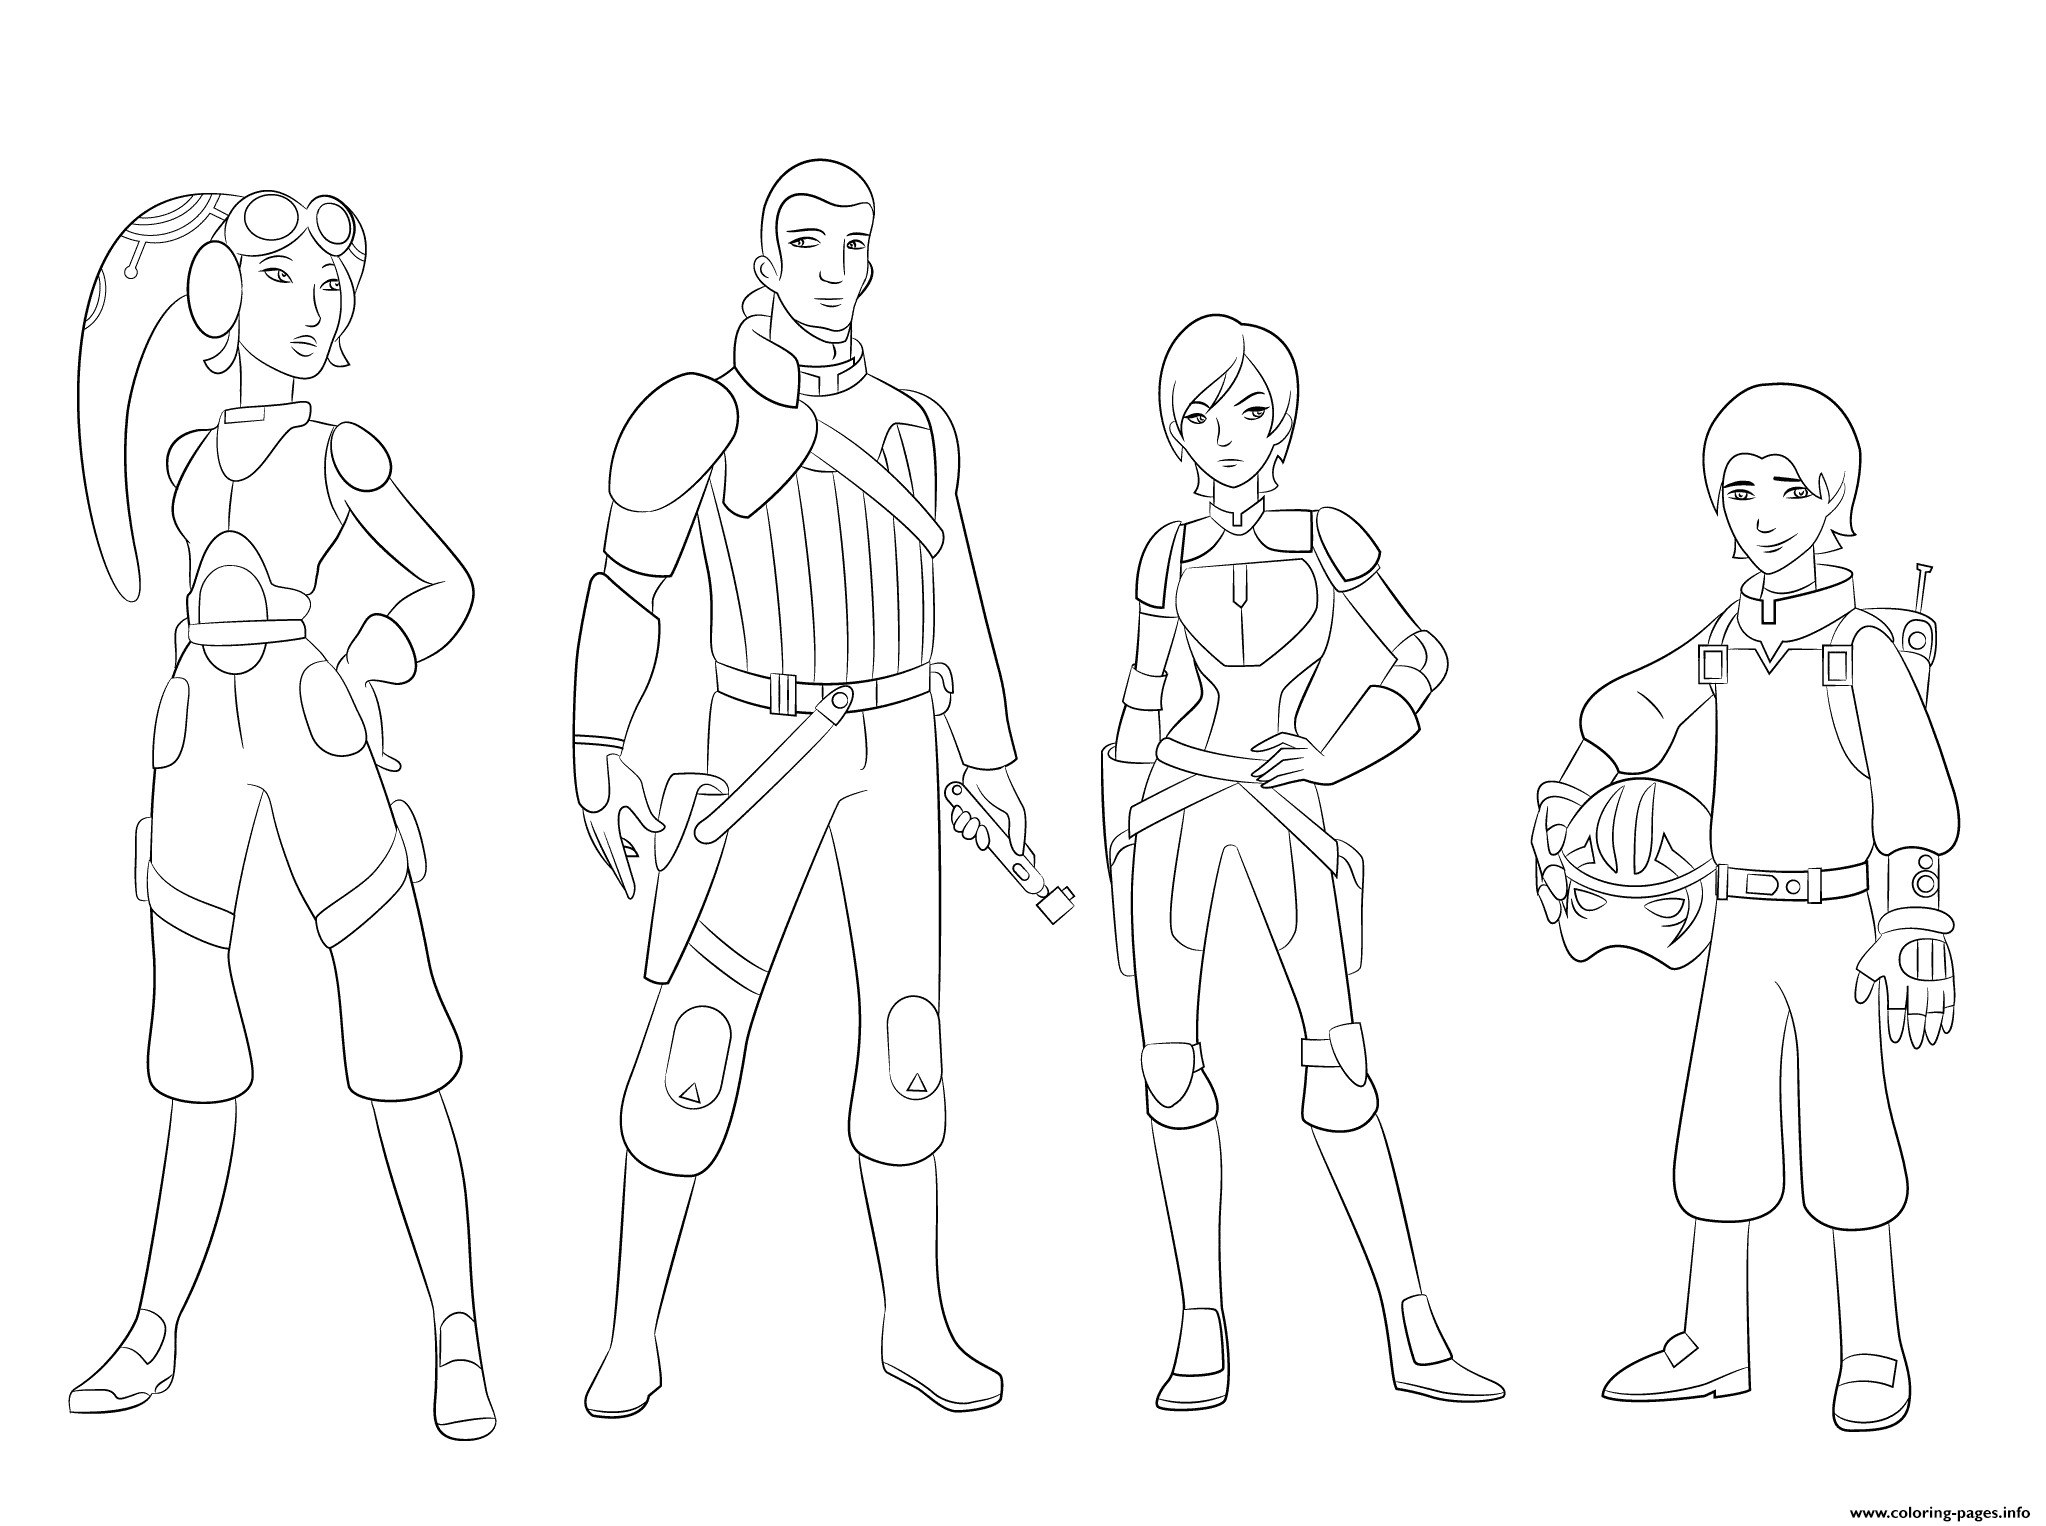 Star Wars Rebels Characterss coloring pages